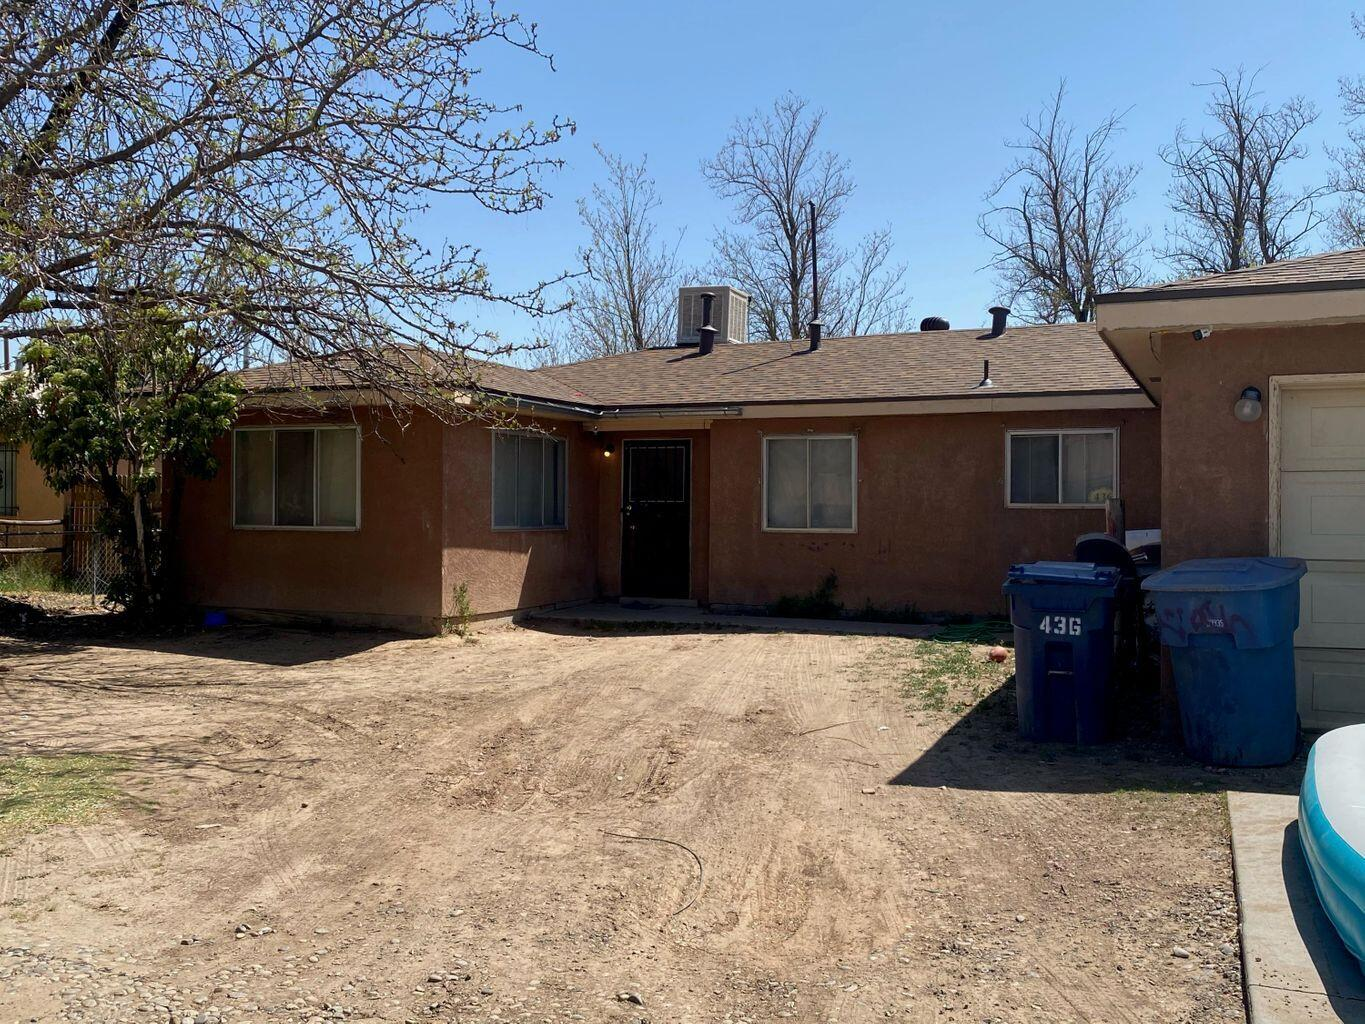 Come see this hidden gem in the heart of Los Lunas today. Within walking distance to the Rail Runner, this cute cozy home is low maintenance with 2 bedrooms, 1 full bathroom and 1 car garage. Transform this house to your Home with your personal touches!